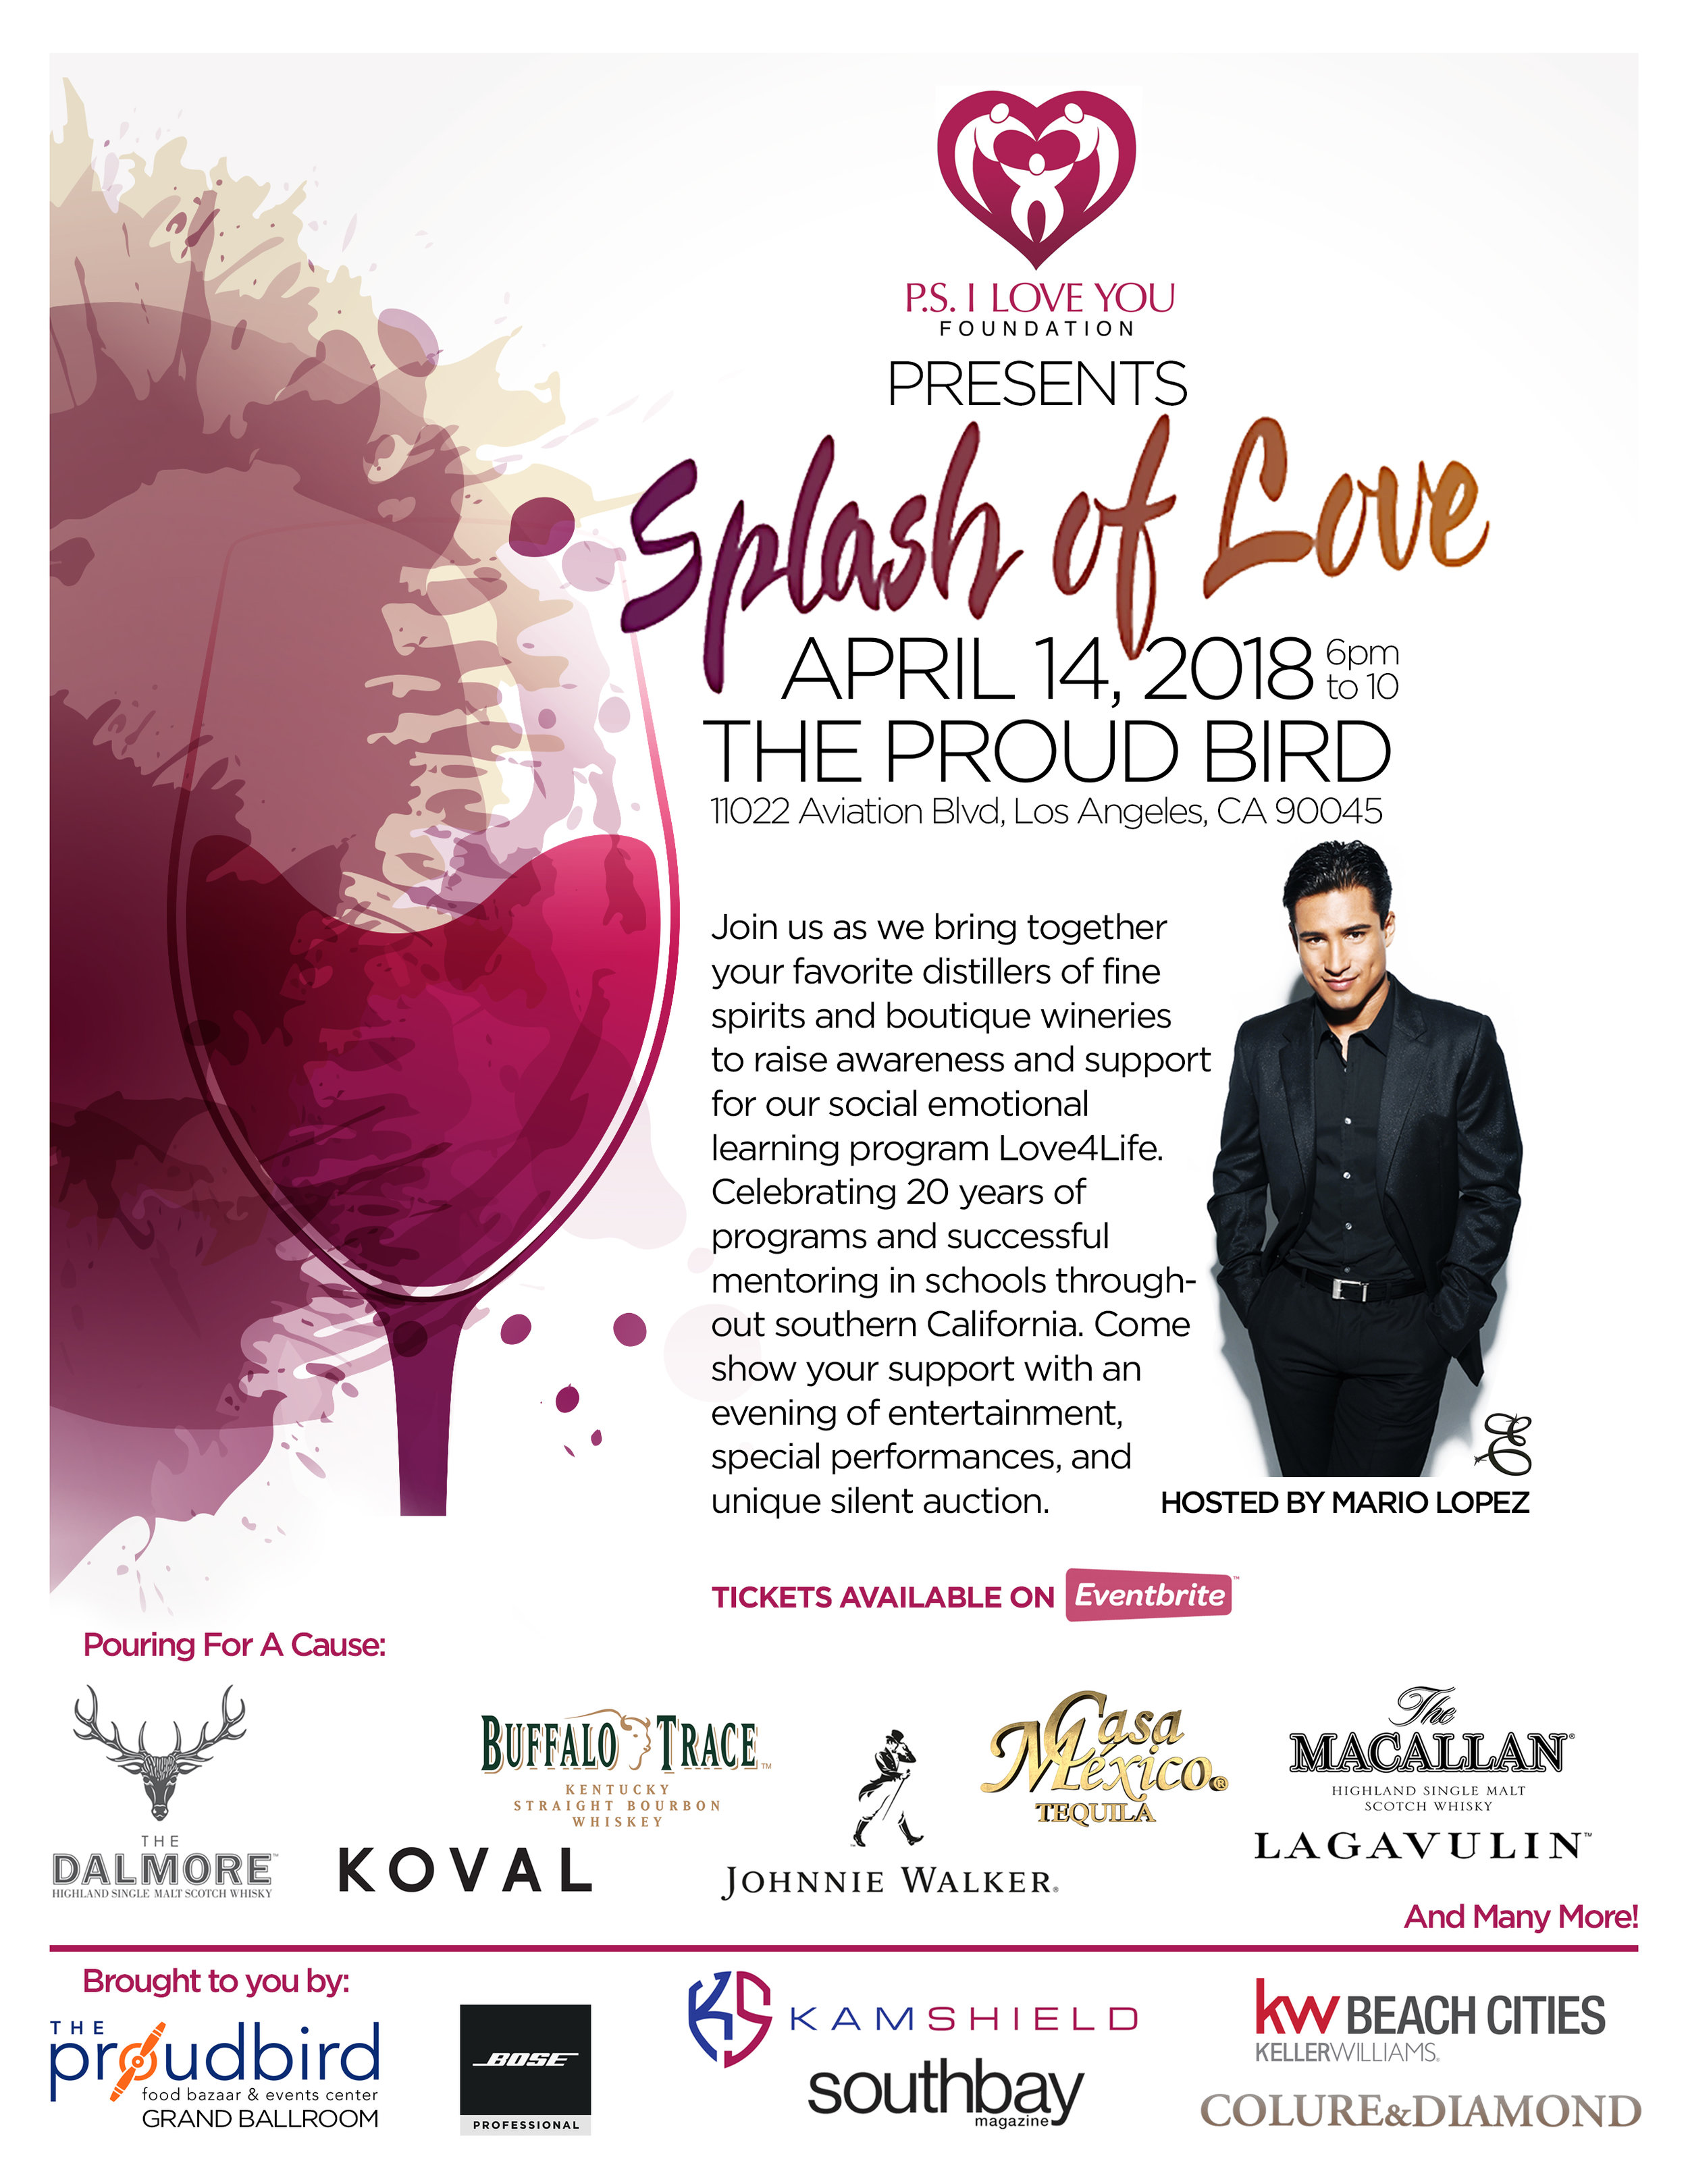 Latest Event! - Title: Splash of Love - Hosted by Mario LopezClient: P.S. I Love FoundationProduced by Colure and DiamondDate: April 14th 2018Venue Partner: The Proud Bird Food Bazaar & Events Center at LAX